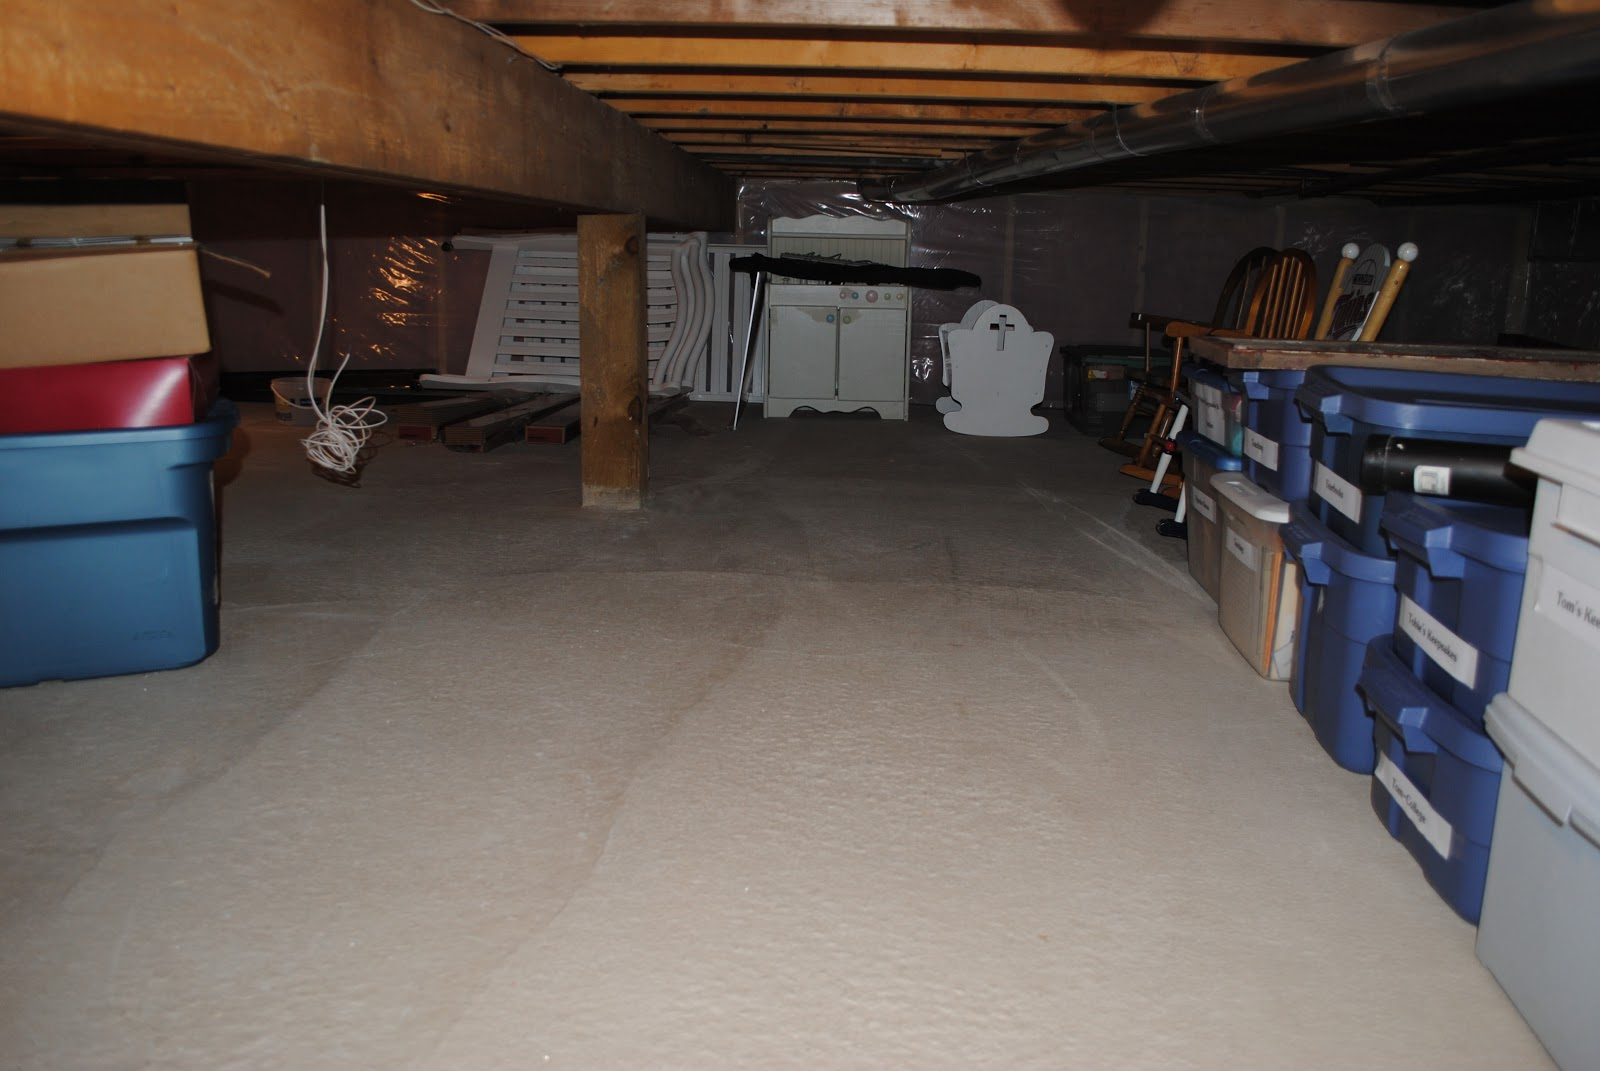 Crawl Space Finishing : Tobie s thoughts resolutions early finished crawl